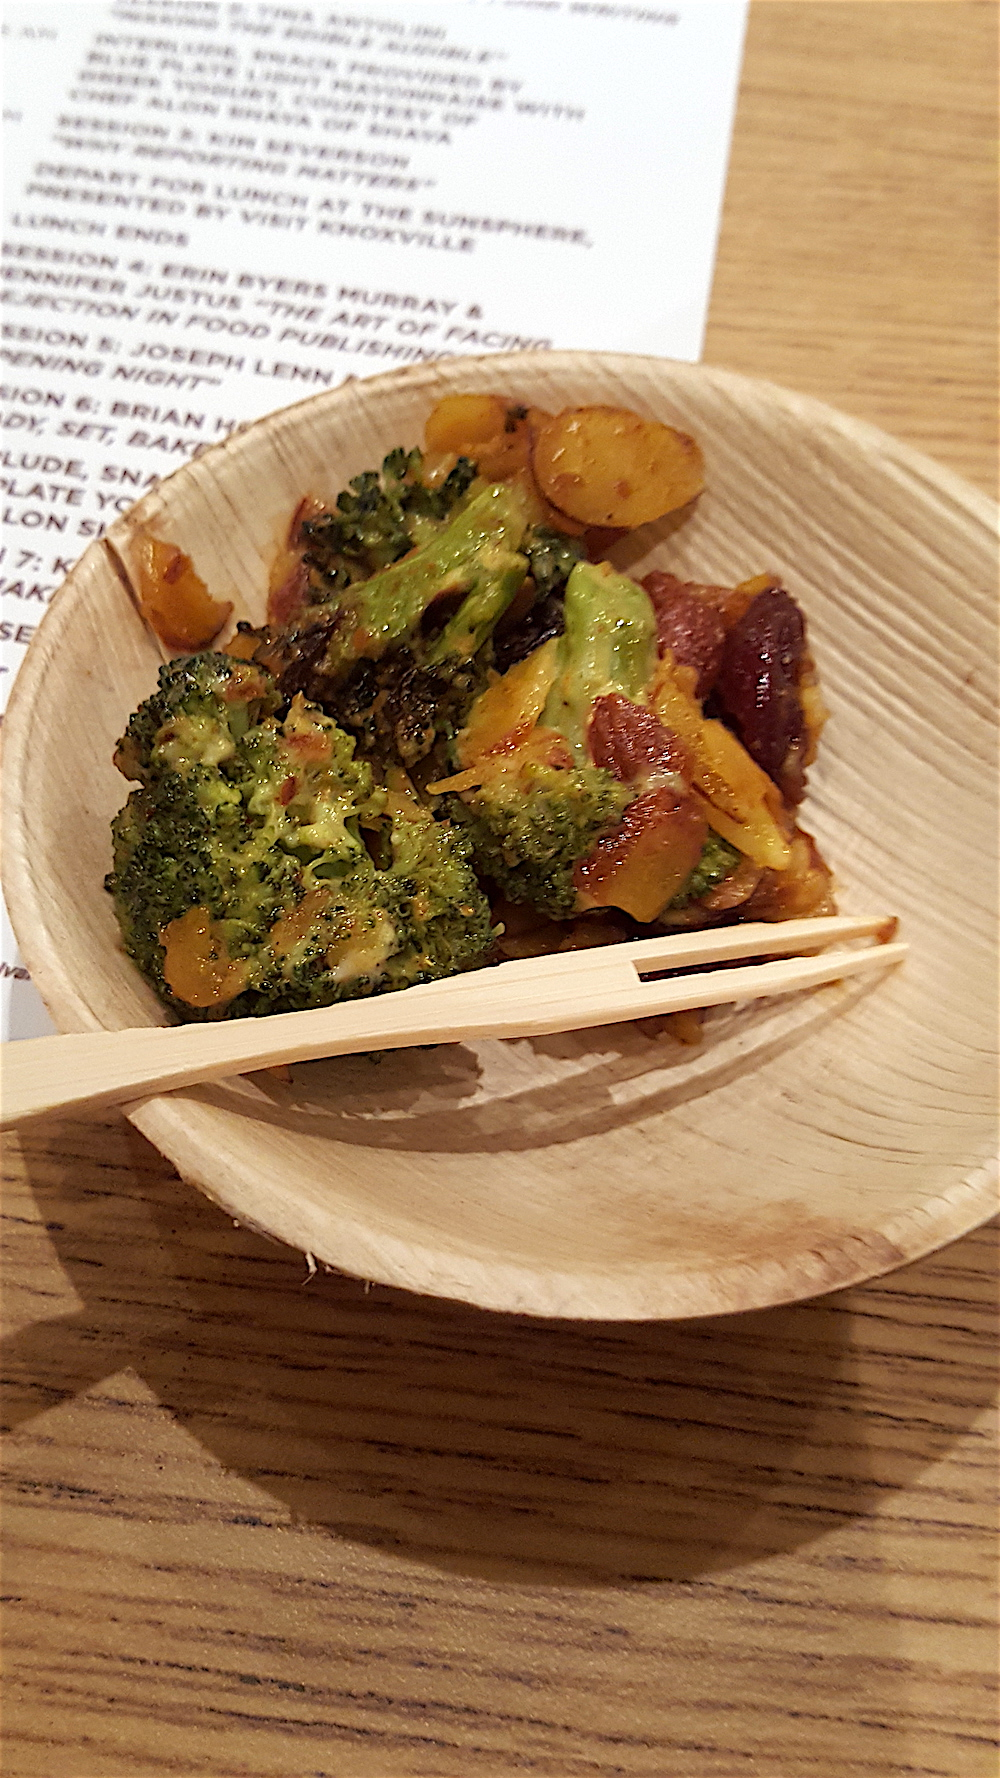 Also prepared by Chef Alon Shaya, charred broccoli salad was made with Blue Plate Light Mayonnaise with Greek Yogurt.